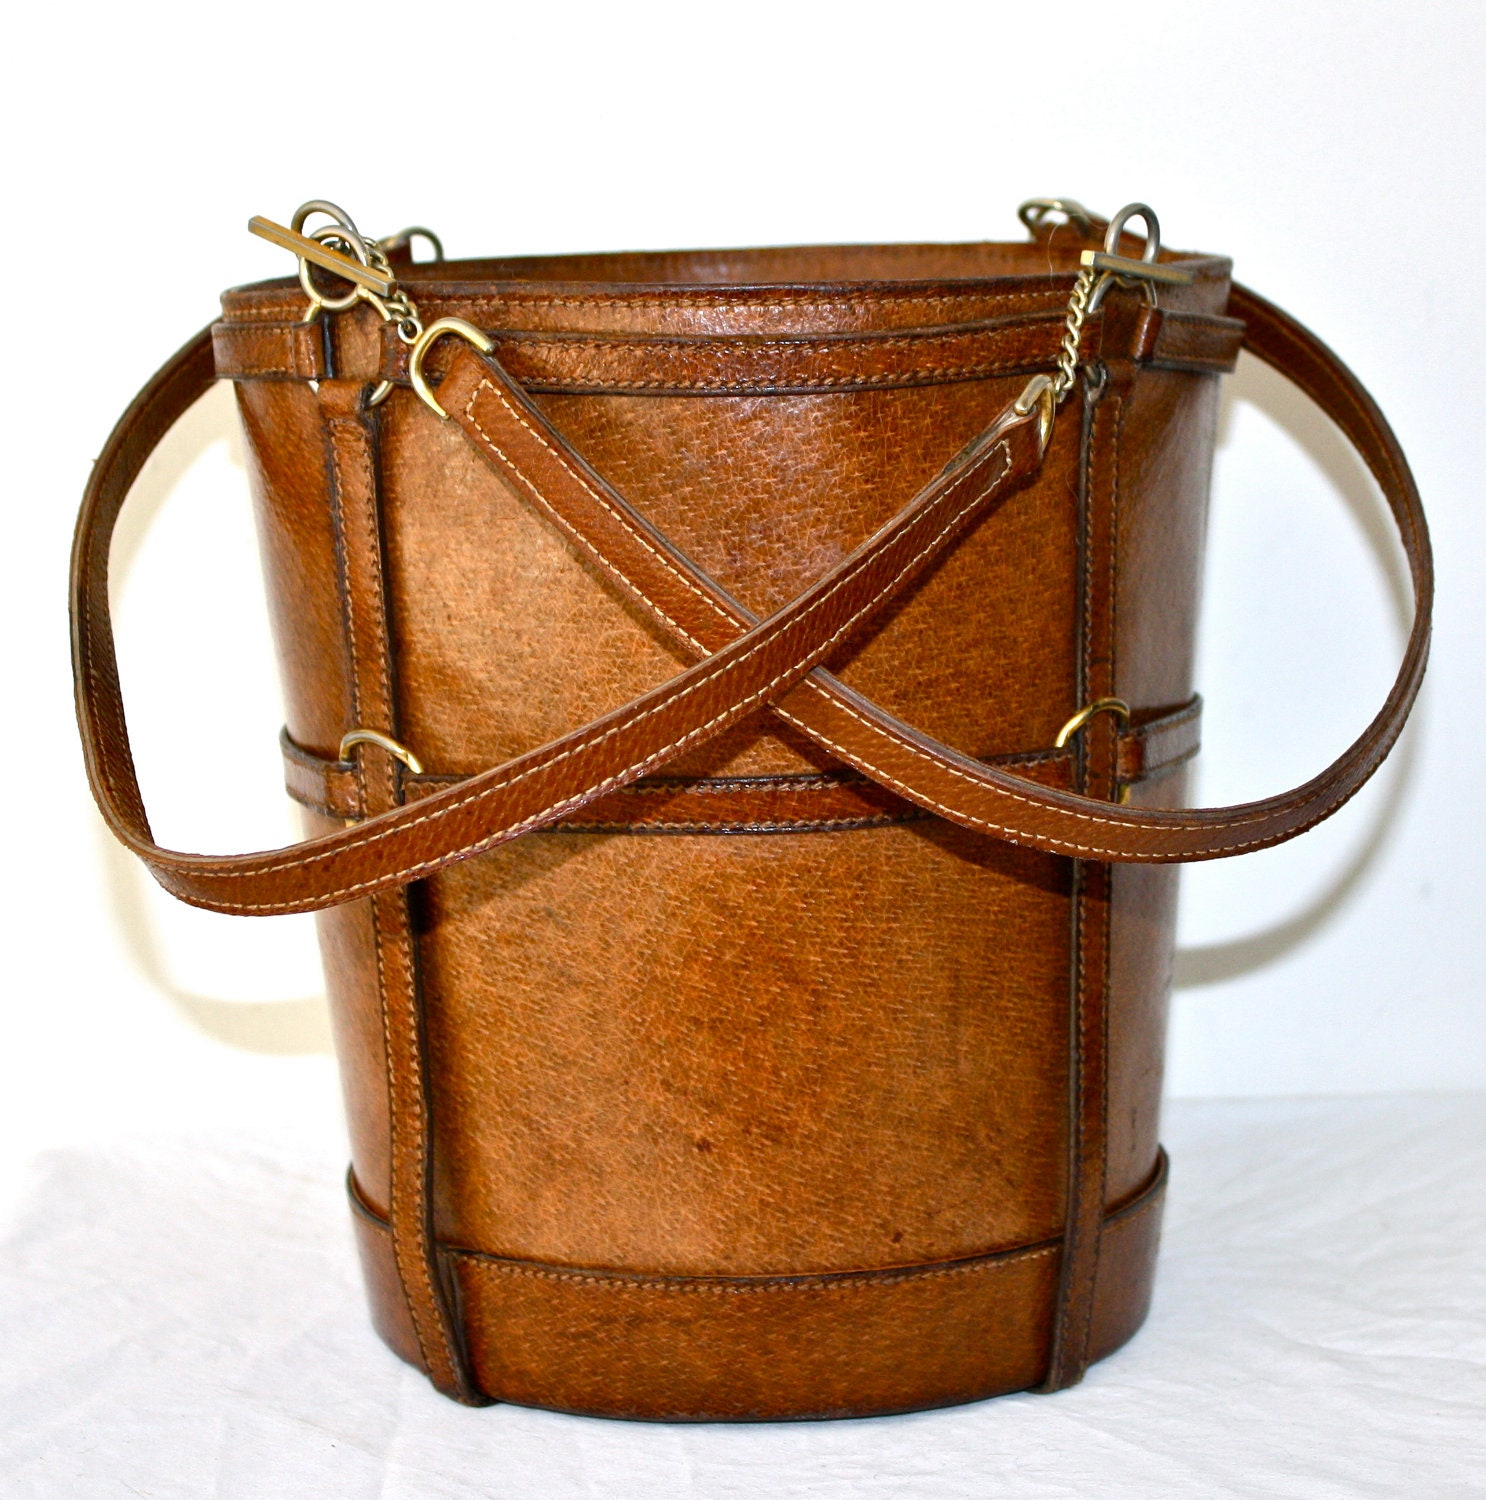 Vintage Gucci Tote Rare Brown Leather Picnic Feed Bag